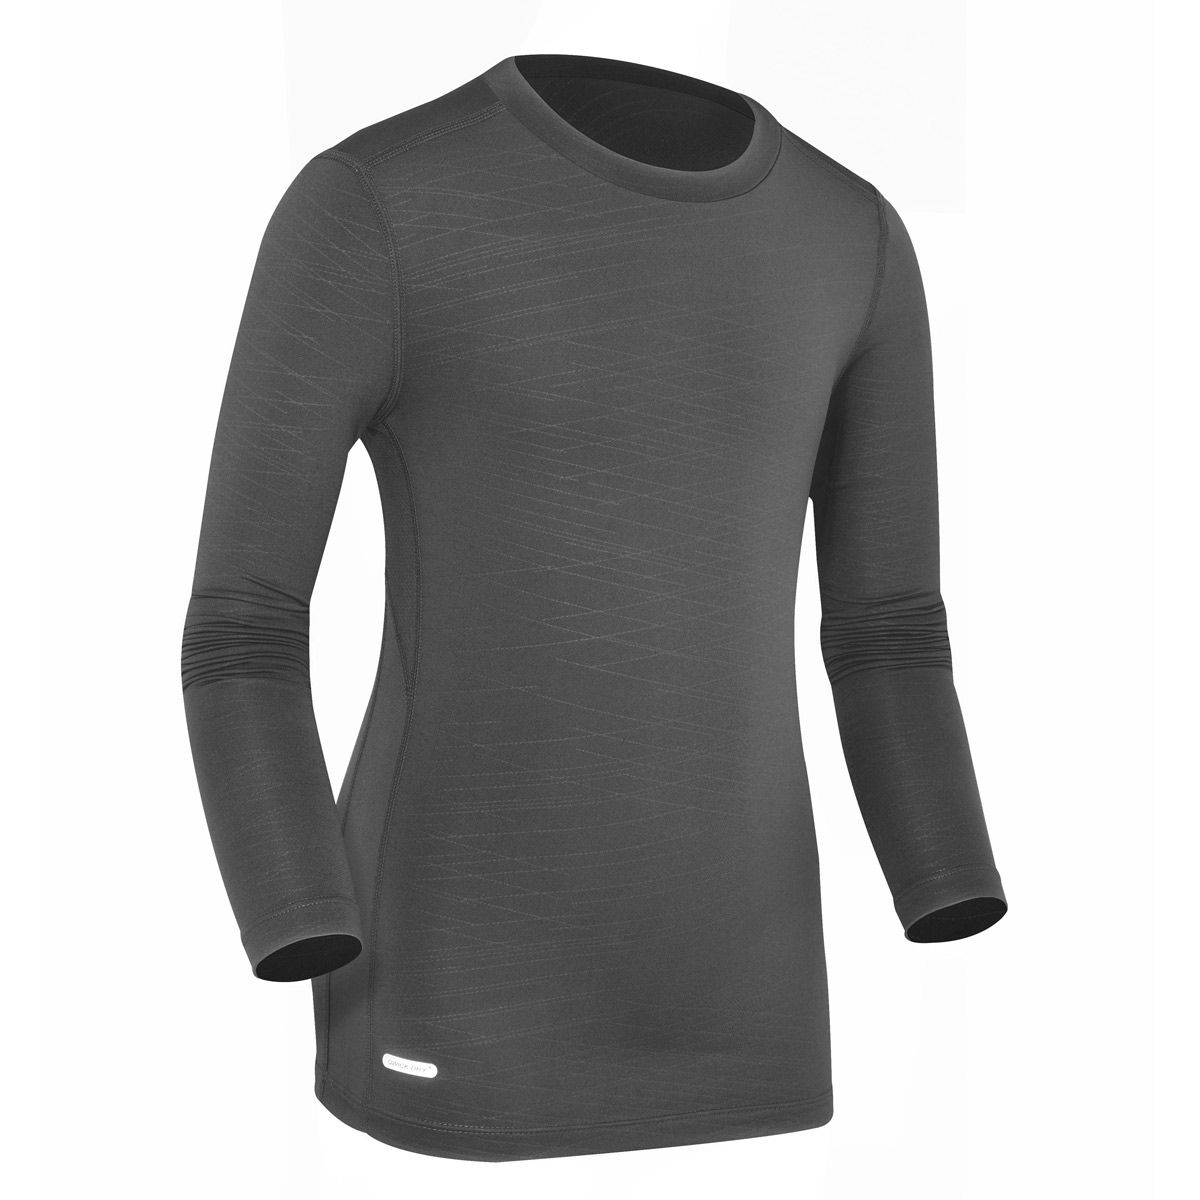 UniPro Boys All Weather Long Sleeve Crew